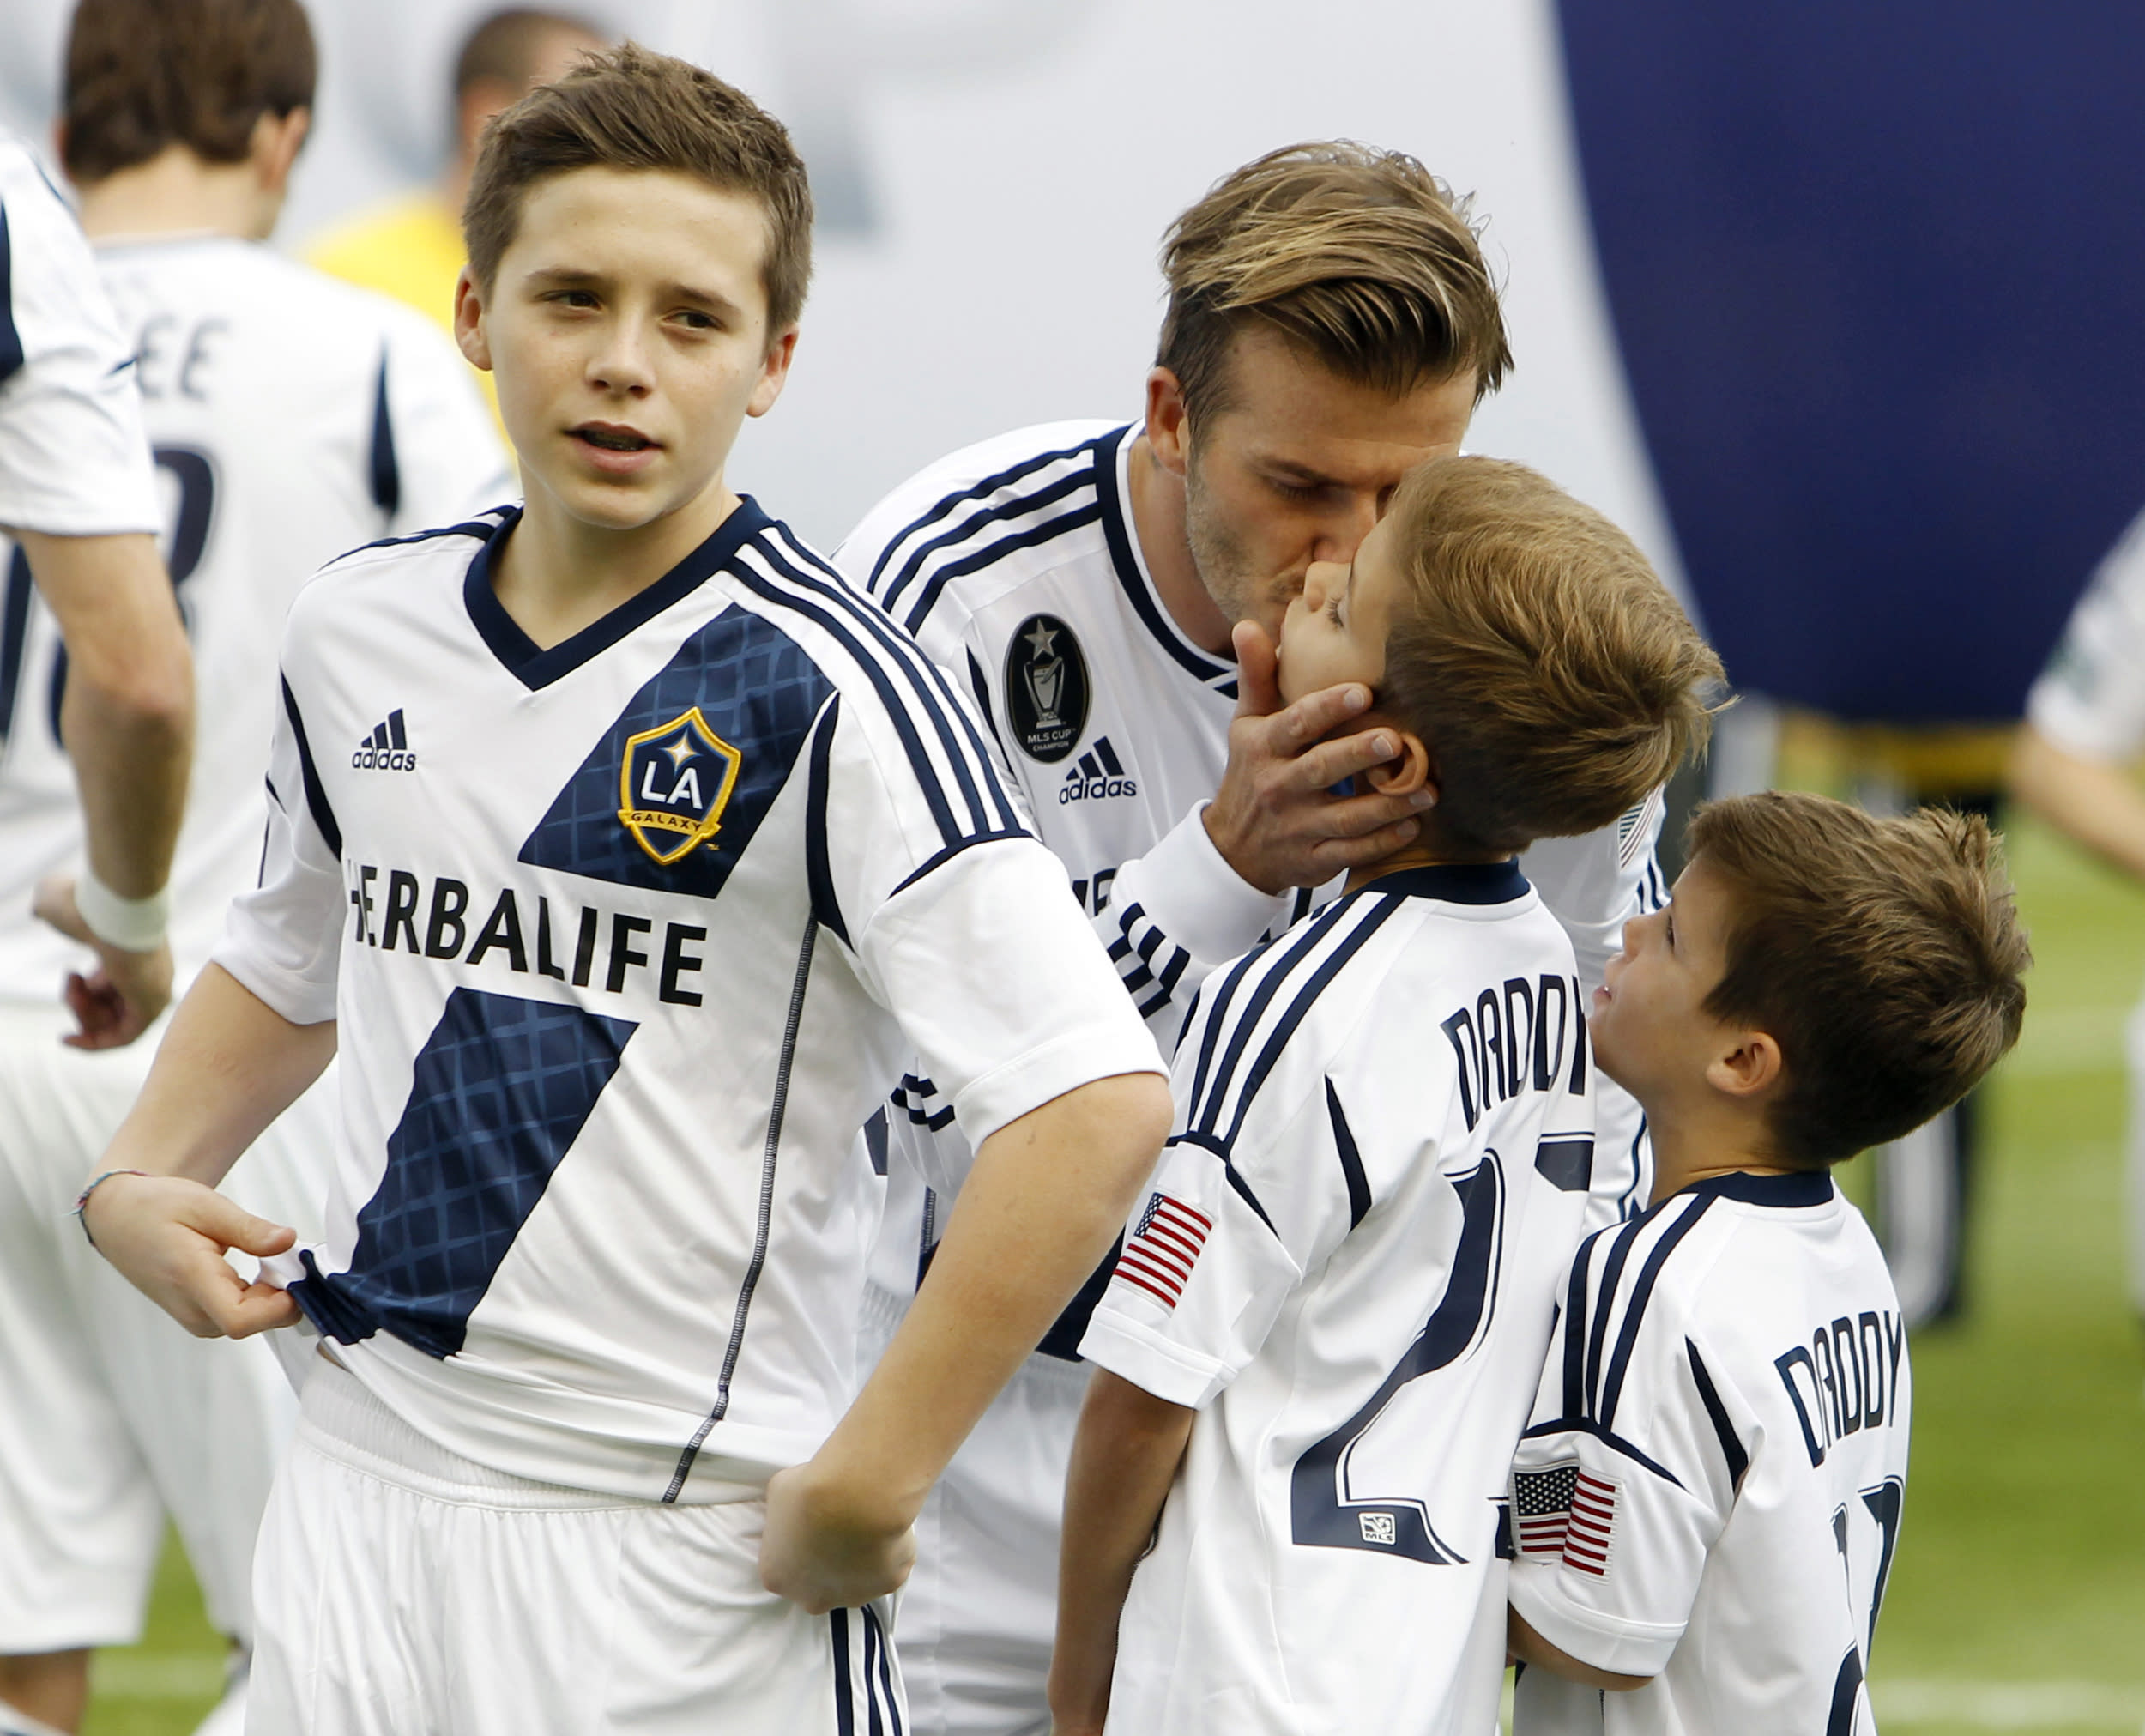 Los Angeles Galaxy's David Beckham kisses his sons Brooklyn (L), Romeo (C) and Cruz (R) before the MLS Cup championship soccer game against Houston Dynamo in Carson, California, December 1, 2012. REUTERS/Danny Moloshok (UNITED STATES - Tags: SPORT SOCCER)